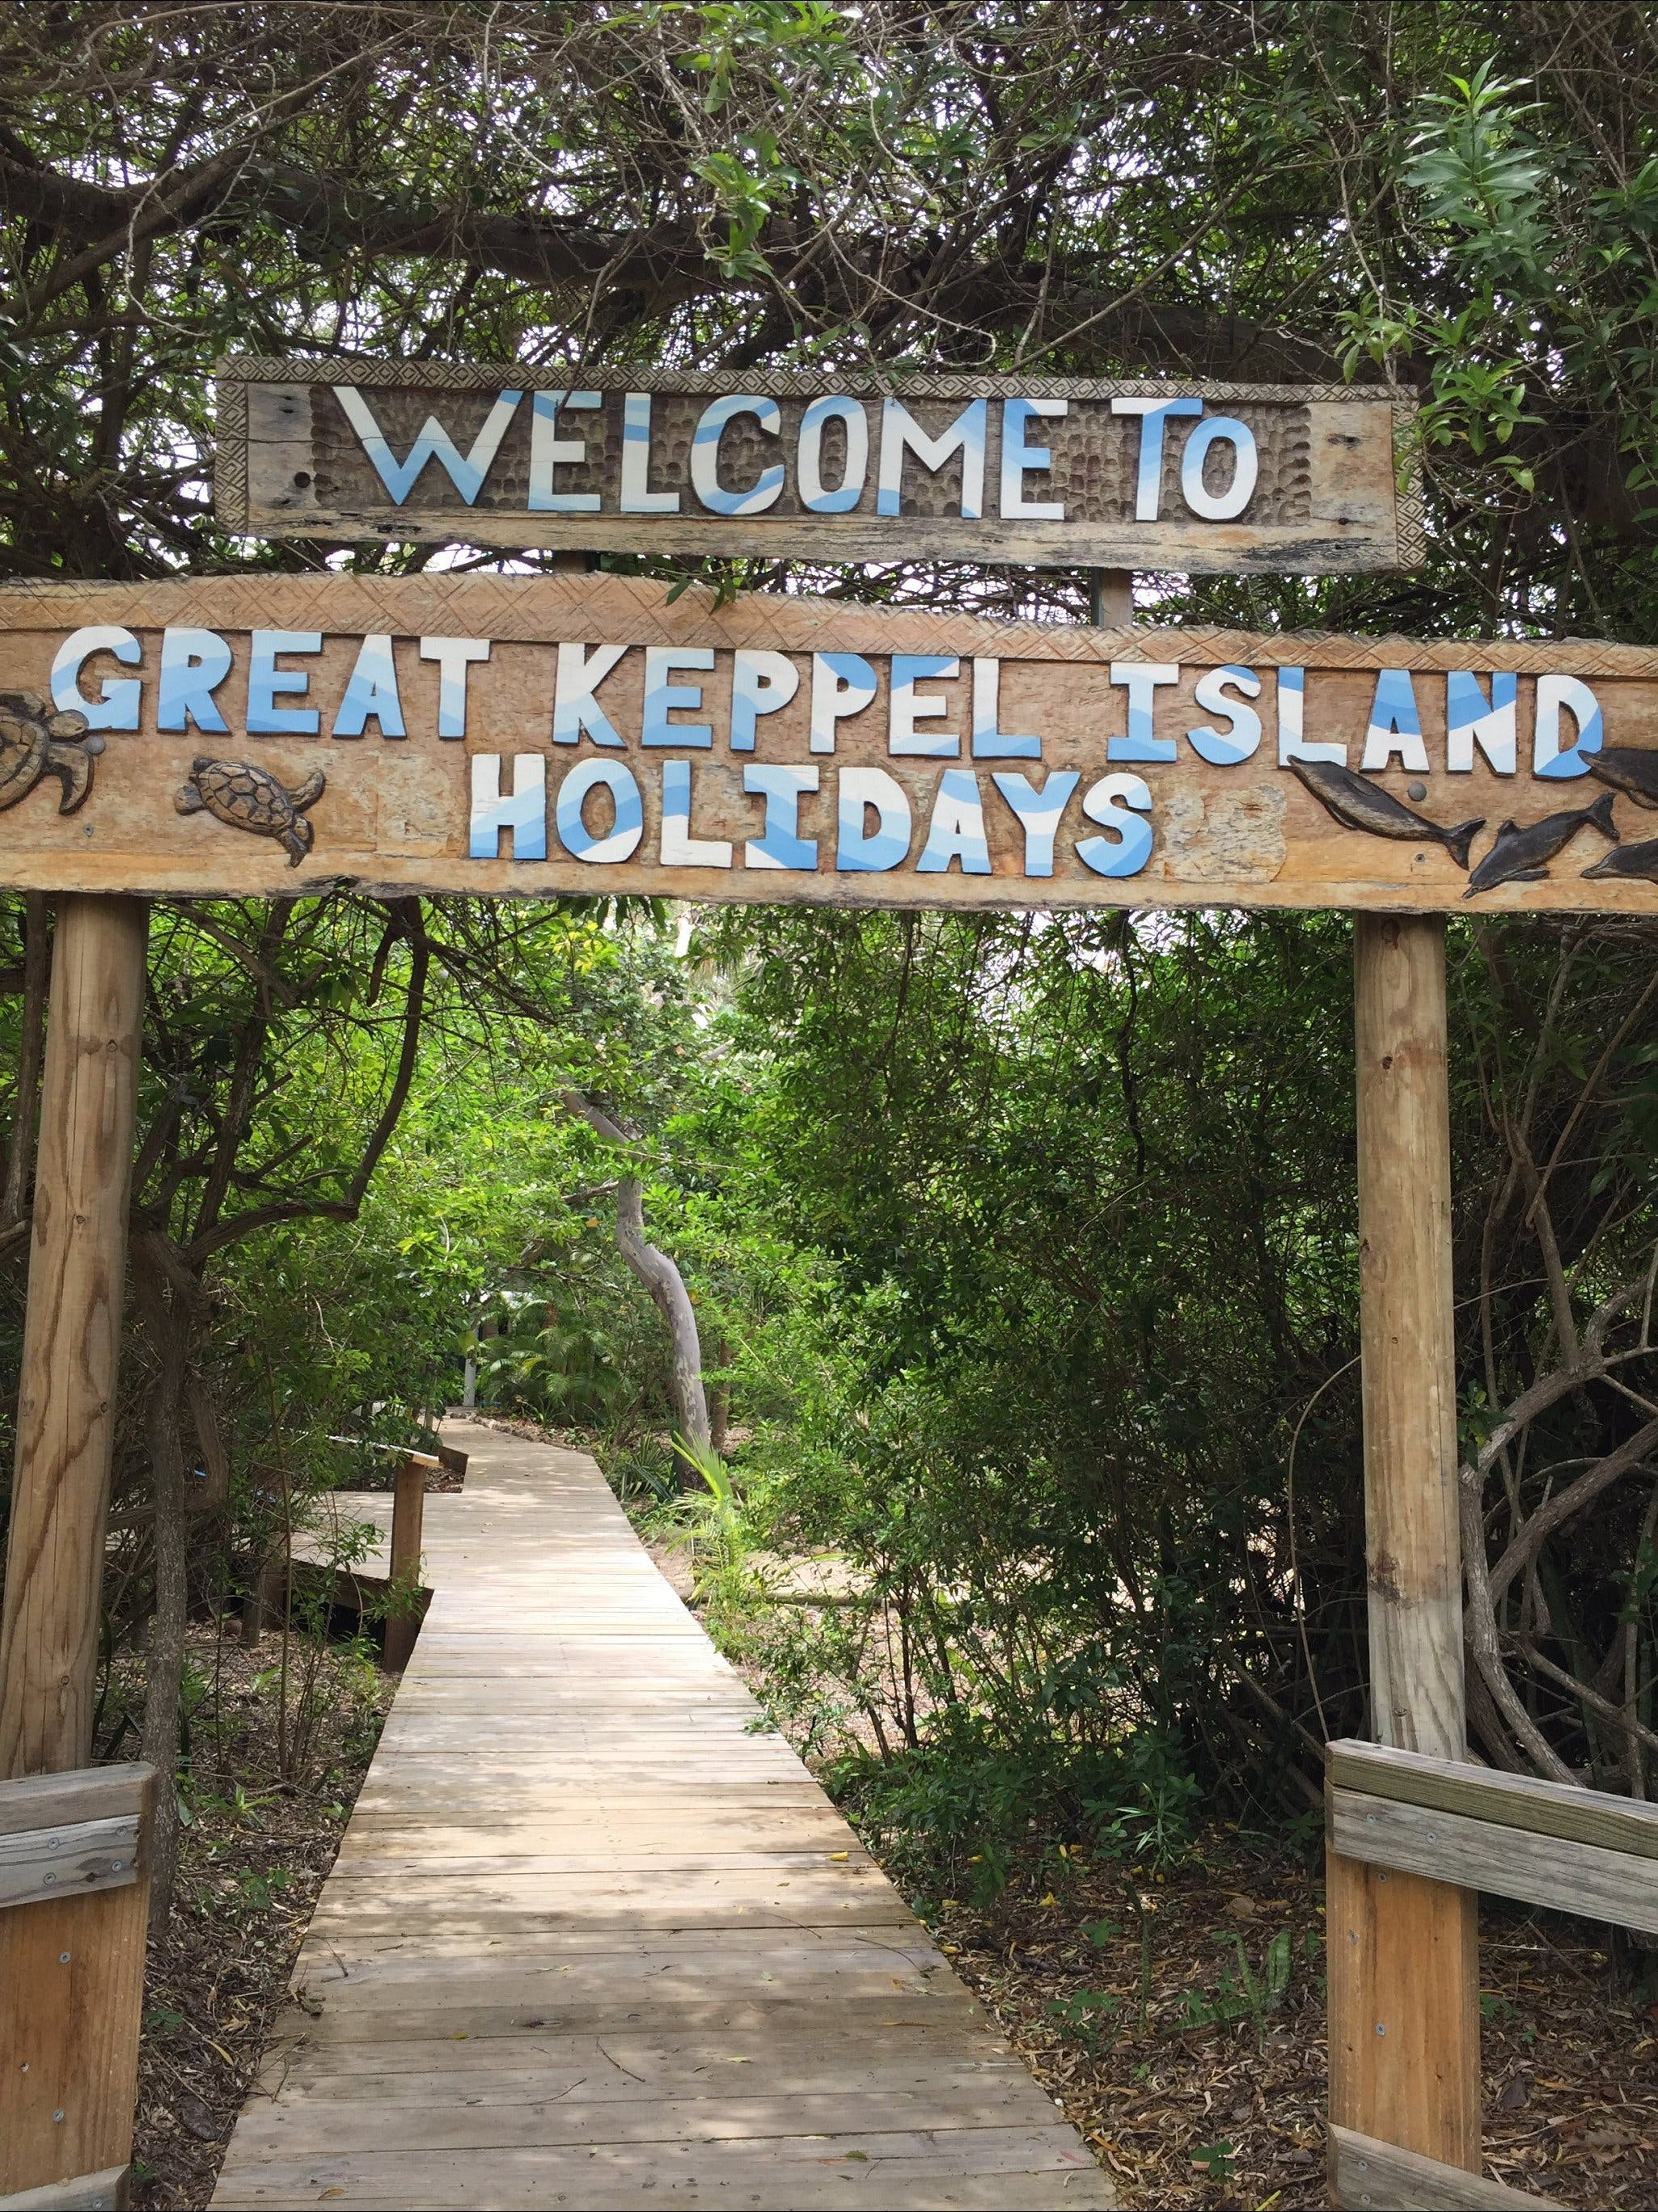 Great Keppel Island Holiday Village - Accommodation Nelson Bay